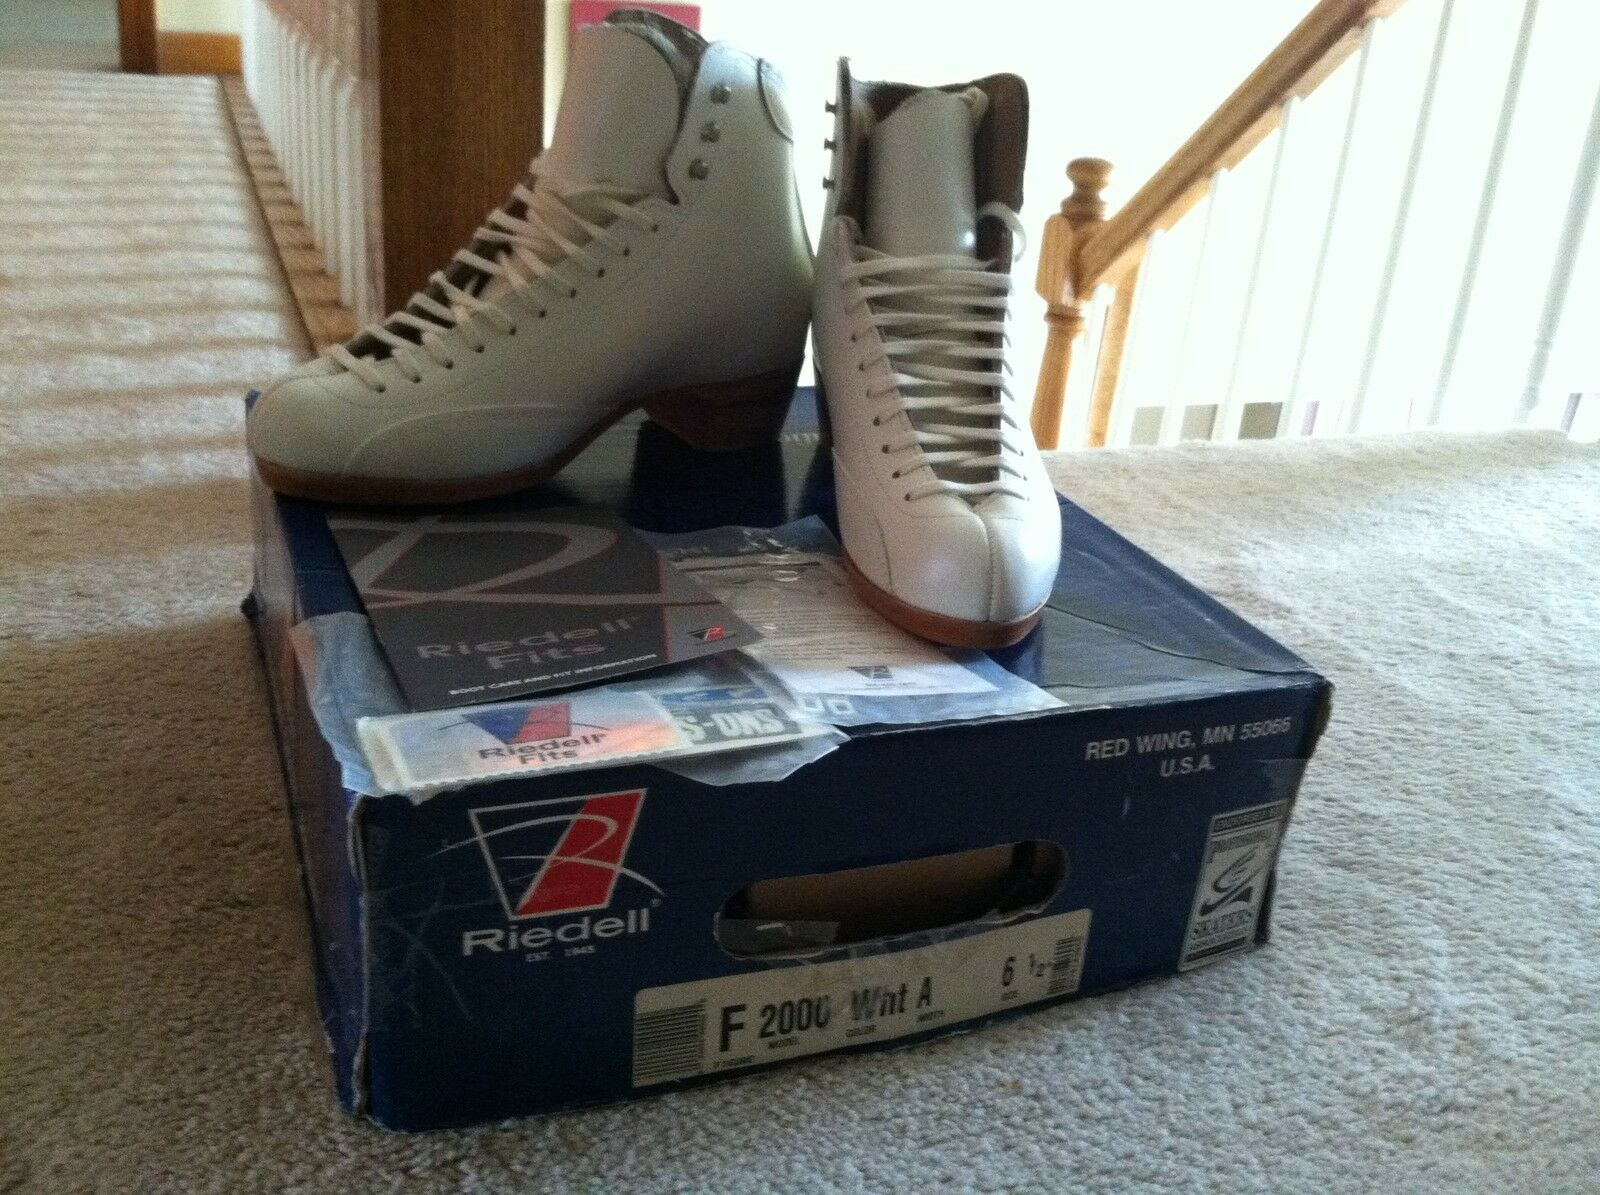 NEW  Riedell F2000 Ice Figure Skating Boot Size Adult Women's 6.5 6 1 2  lowest whole network